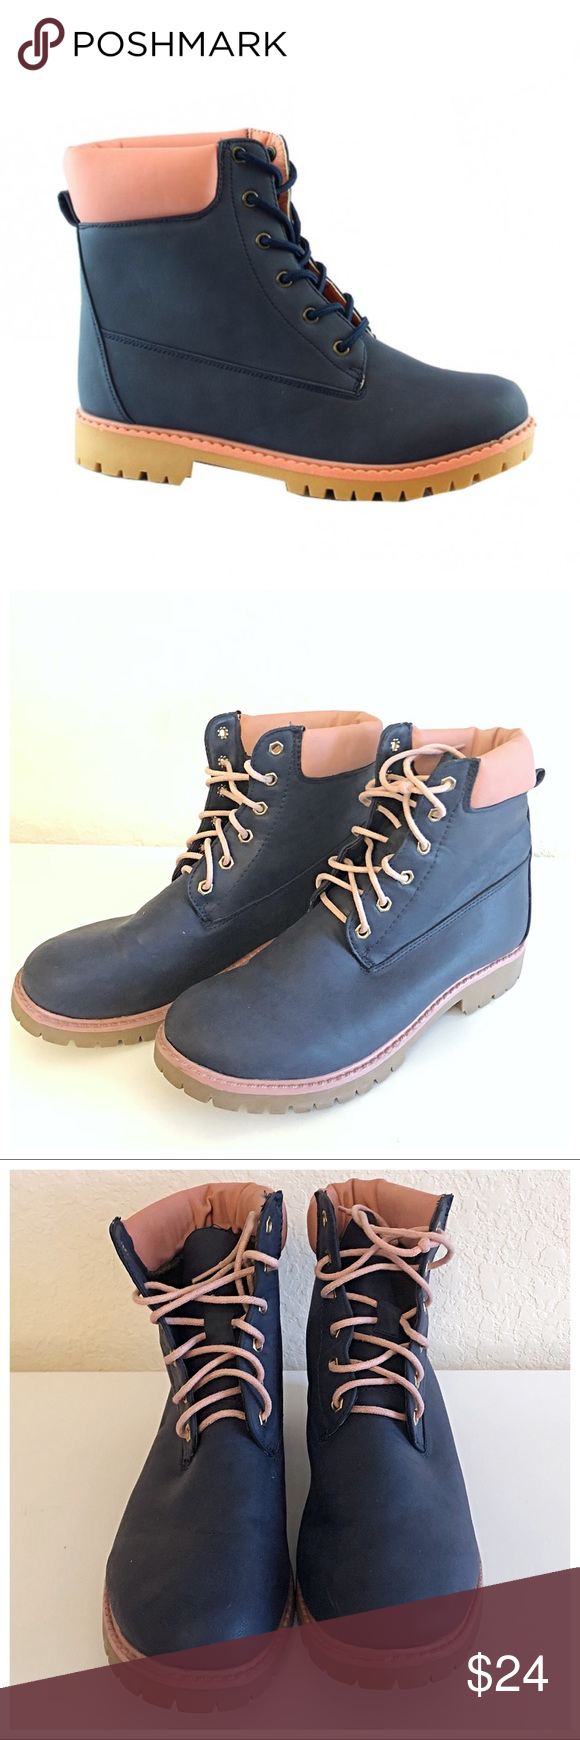 e00866f0de42f Bella Marie Pink and Blue Hiking Boots In good preloved condition. Classic  padded back hiking boot style. Shows small signs of wear.